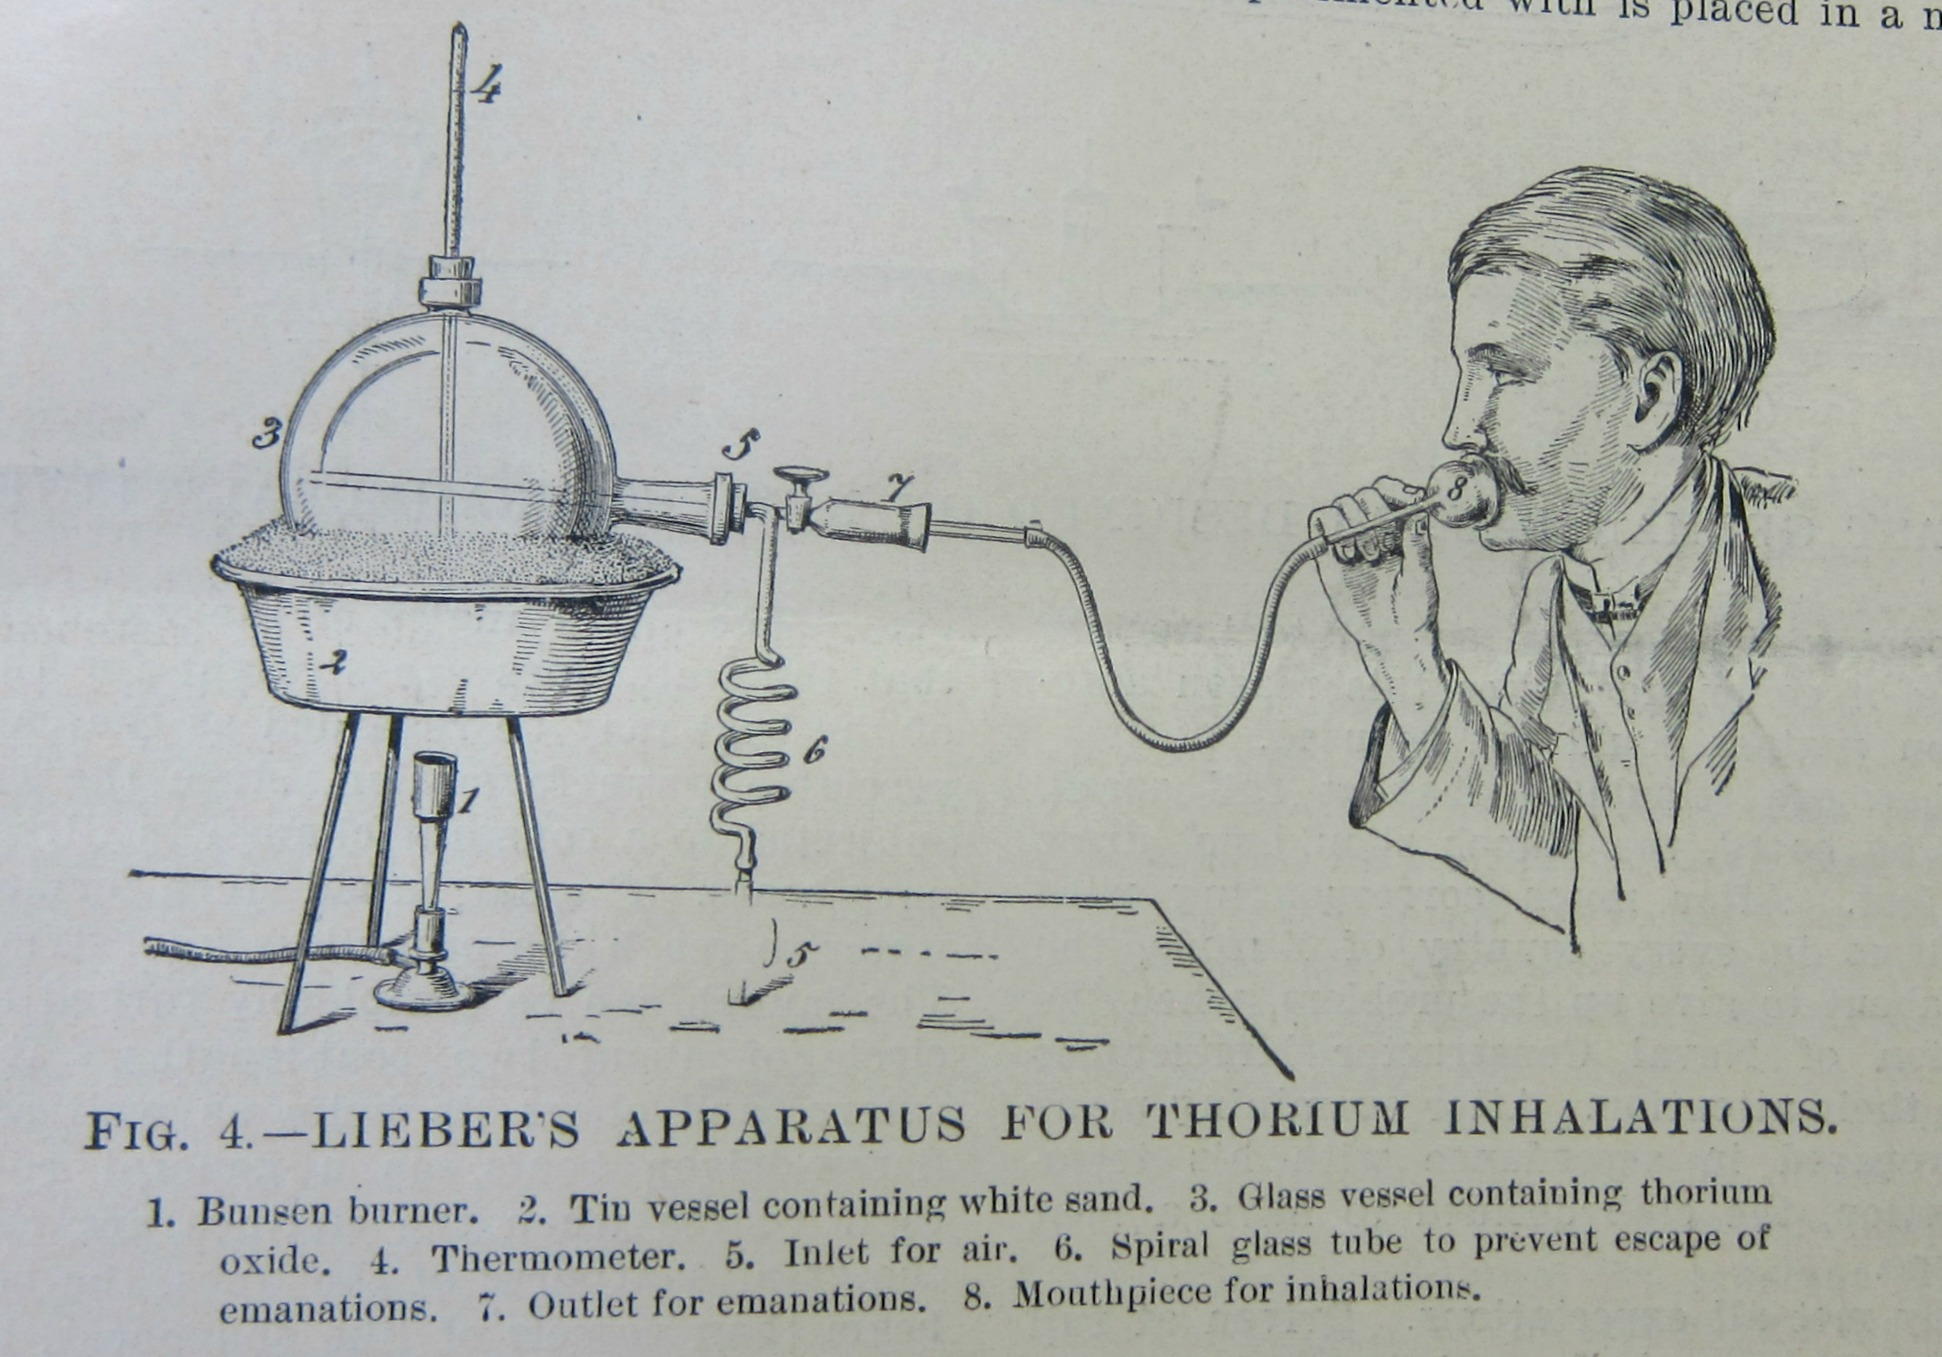 JF Ptak Science Books: An Apparatus for Inhaling Thorium (1904)